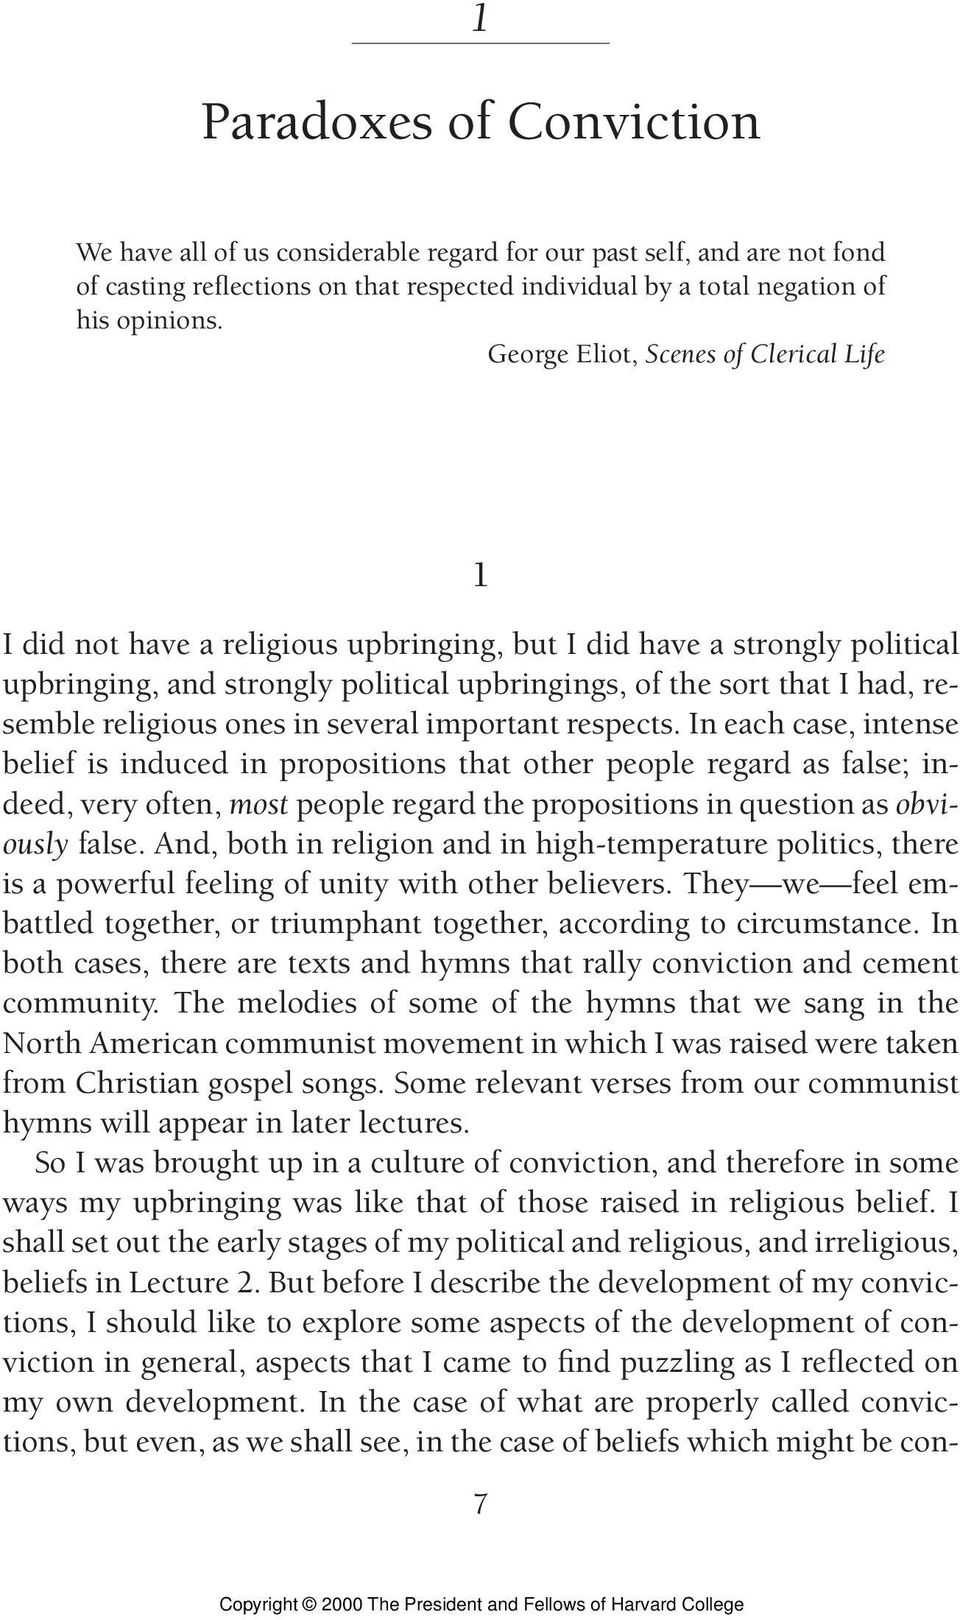 George Eliot, Scenes of Clerical Life 1 I did not have a religious upbringing, but I did have a strongly political upbringing, and strongly political upbringings, of the sort that I had, resemble